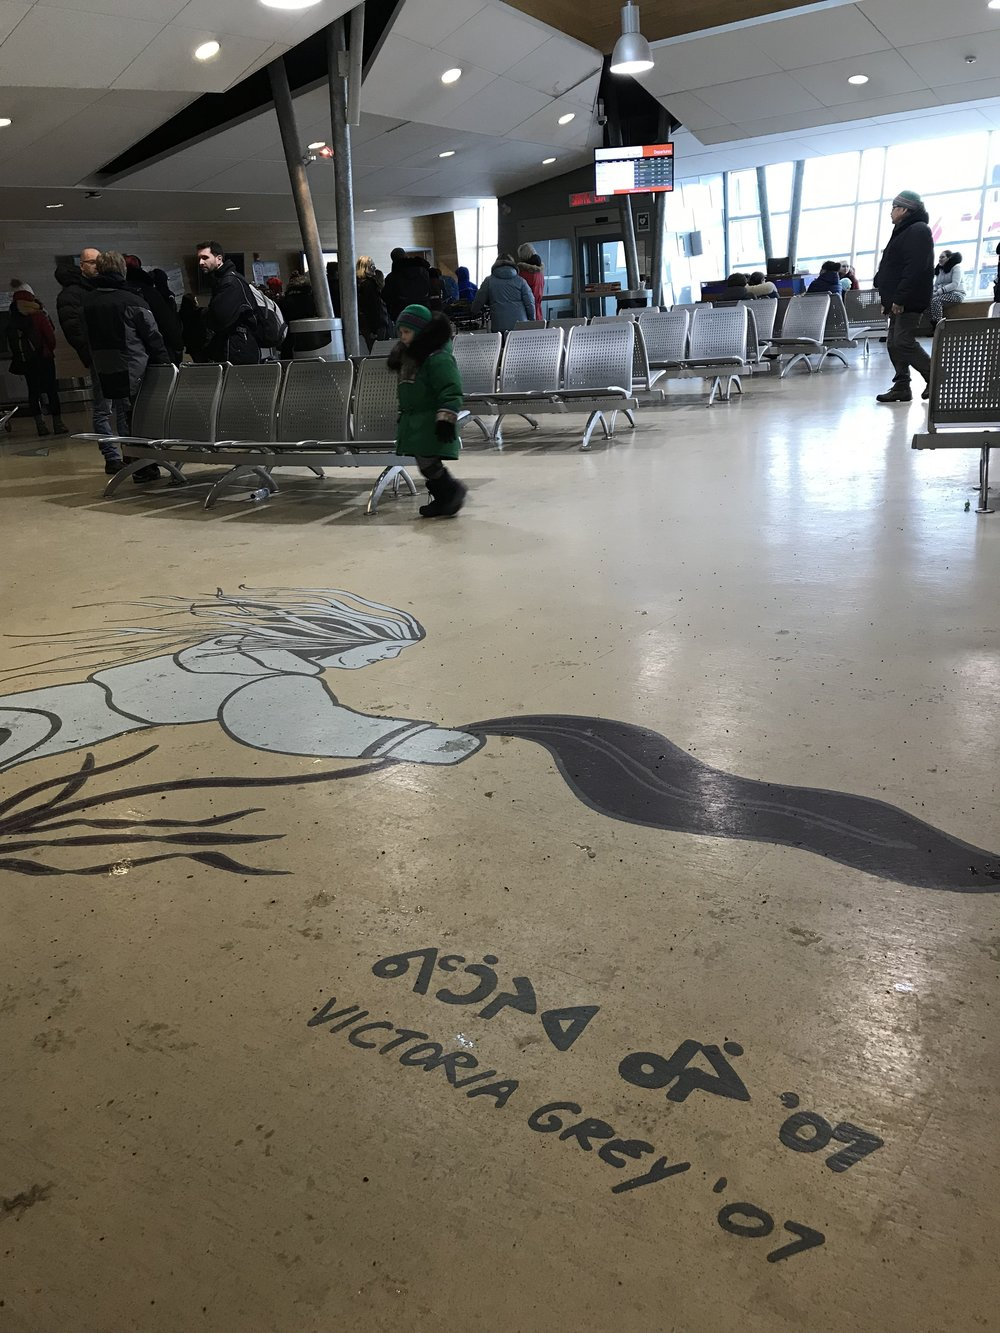 Beautiful Artwork in airport…Sedna (Inuktitut: ᓴᓐᓇ, Sanna) is the  goddess  of the  sea  and marine animals in  Inuit  mytholog